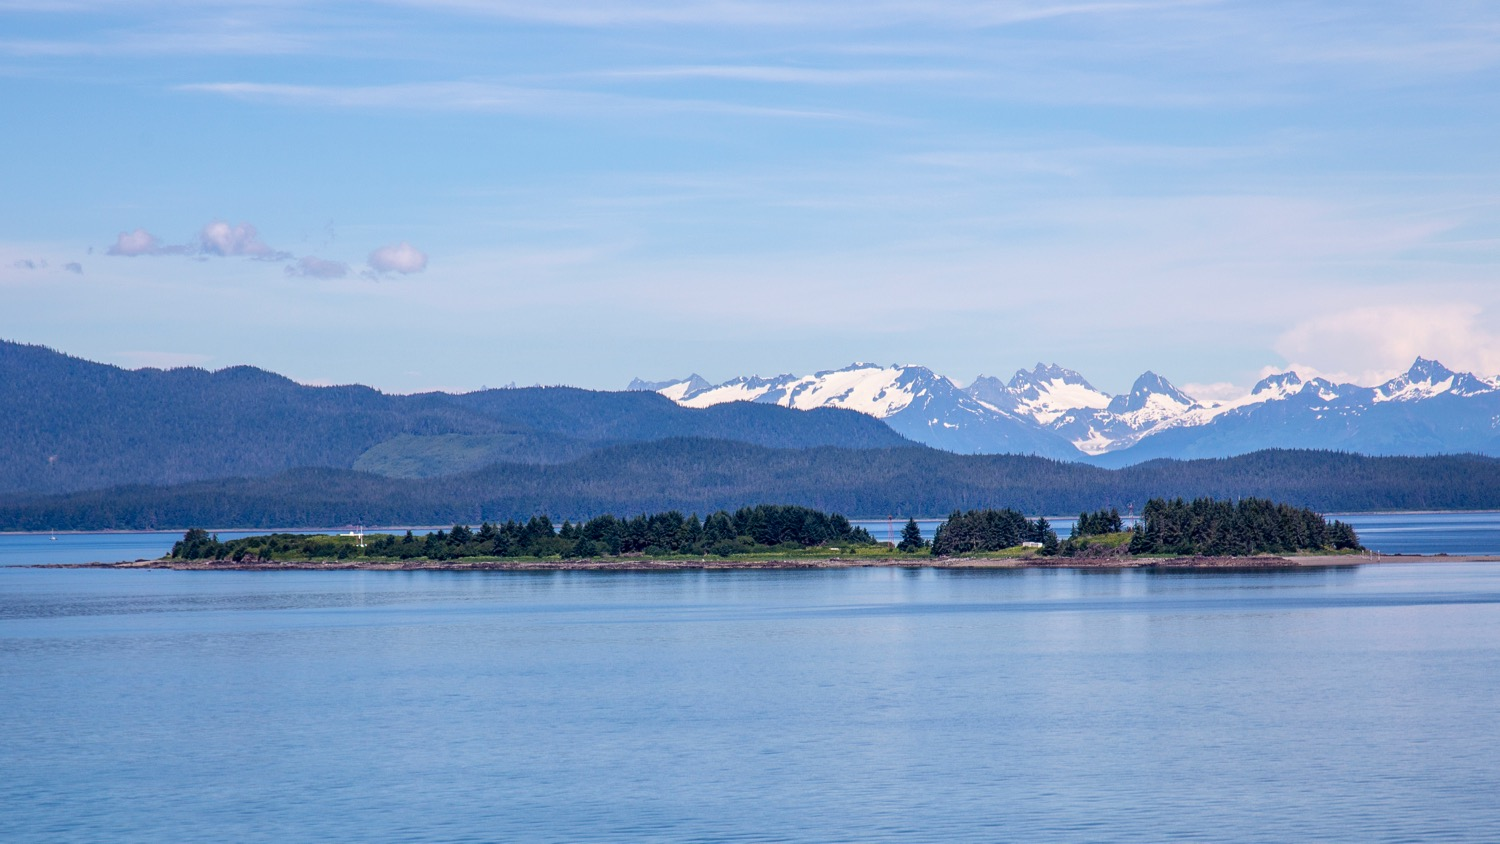 As the strait narrows, there were lots of great little islands that we drifted by.